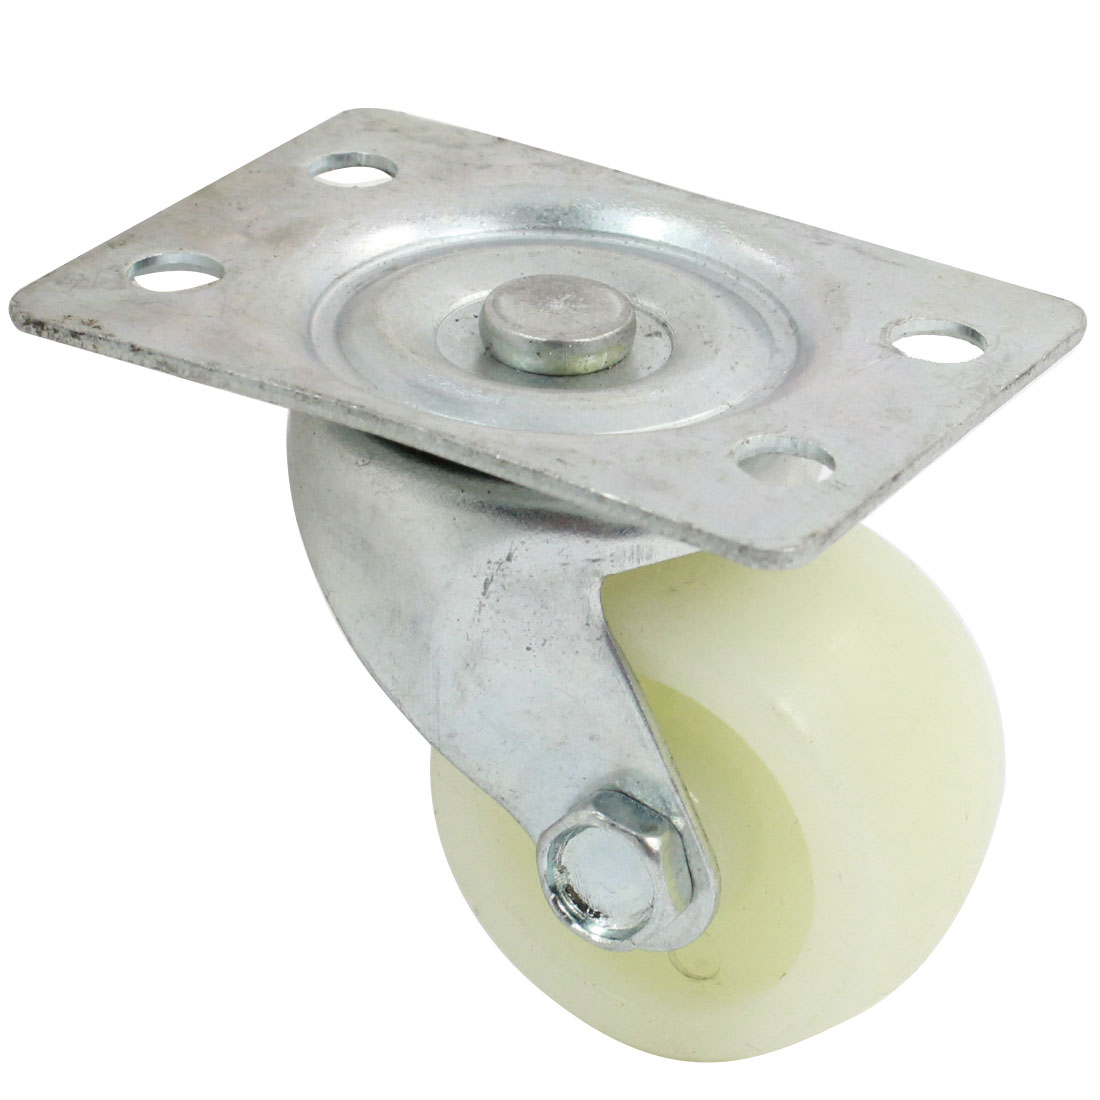 "Trolley 1.5"" Round Single Wheel Rectangle Top Plate 360 Degree Rotation Swivel Caster"